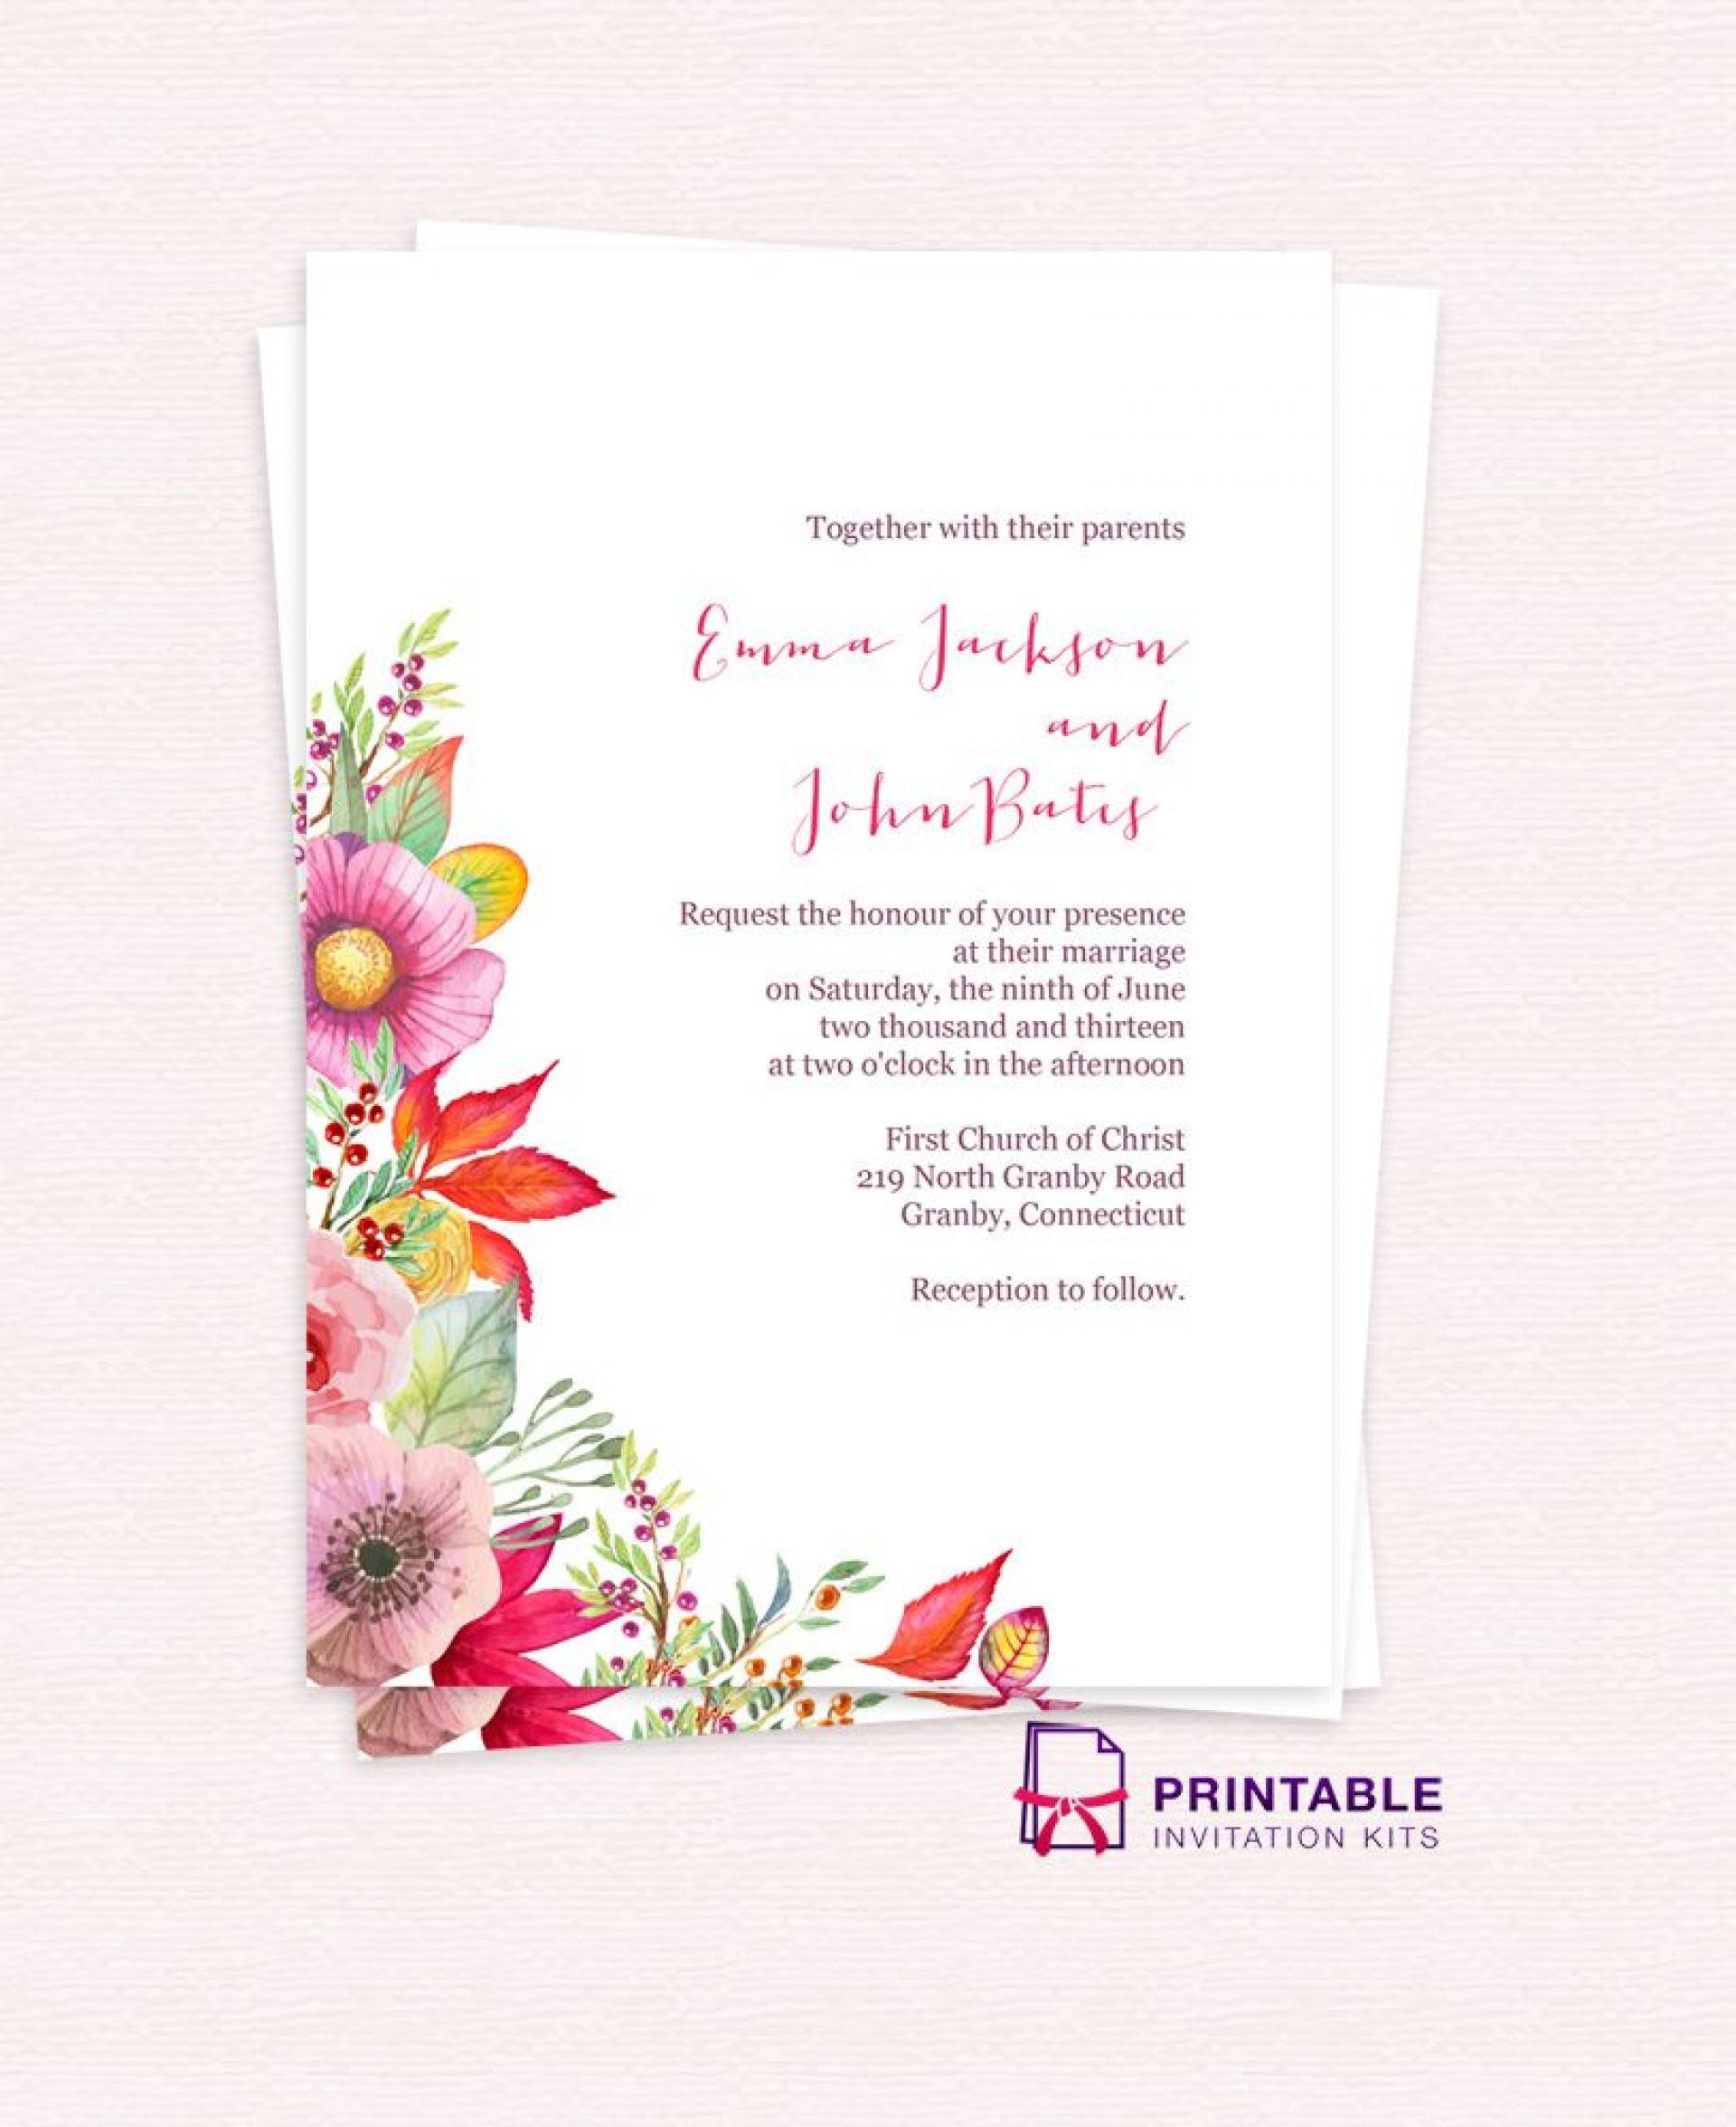 004 Astounding Free Bridal Shower Invite Template Example  Templates Invitation To Print Online Wedding For Microsoft Word1920